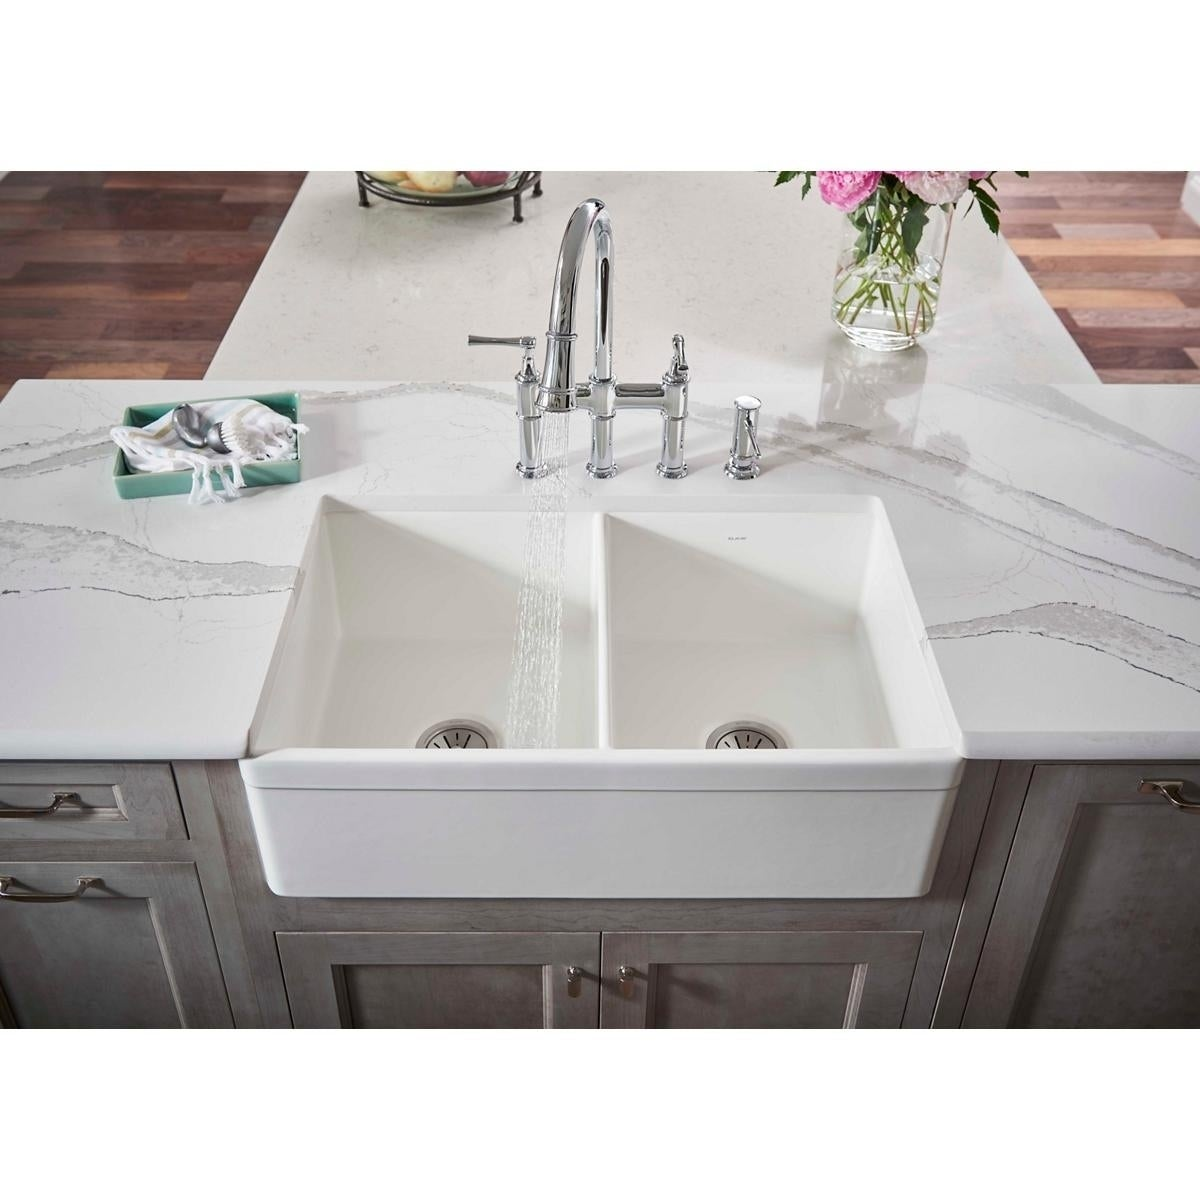 Elkay Fireclay 33 X 19 15 16 10 1 8 Equal Double Bowl Farmhouse Sink White